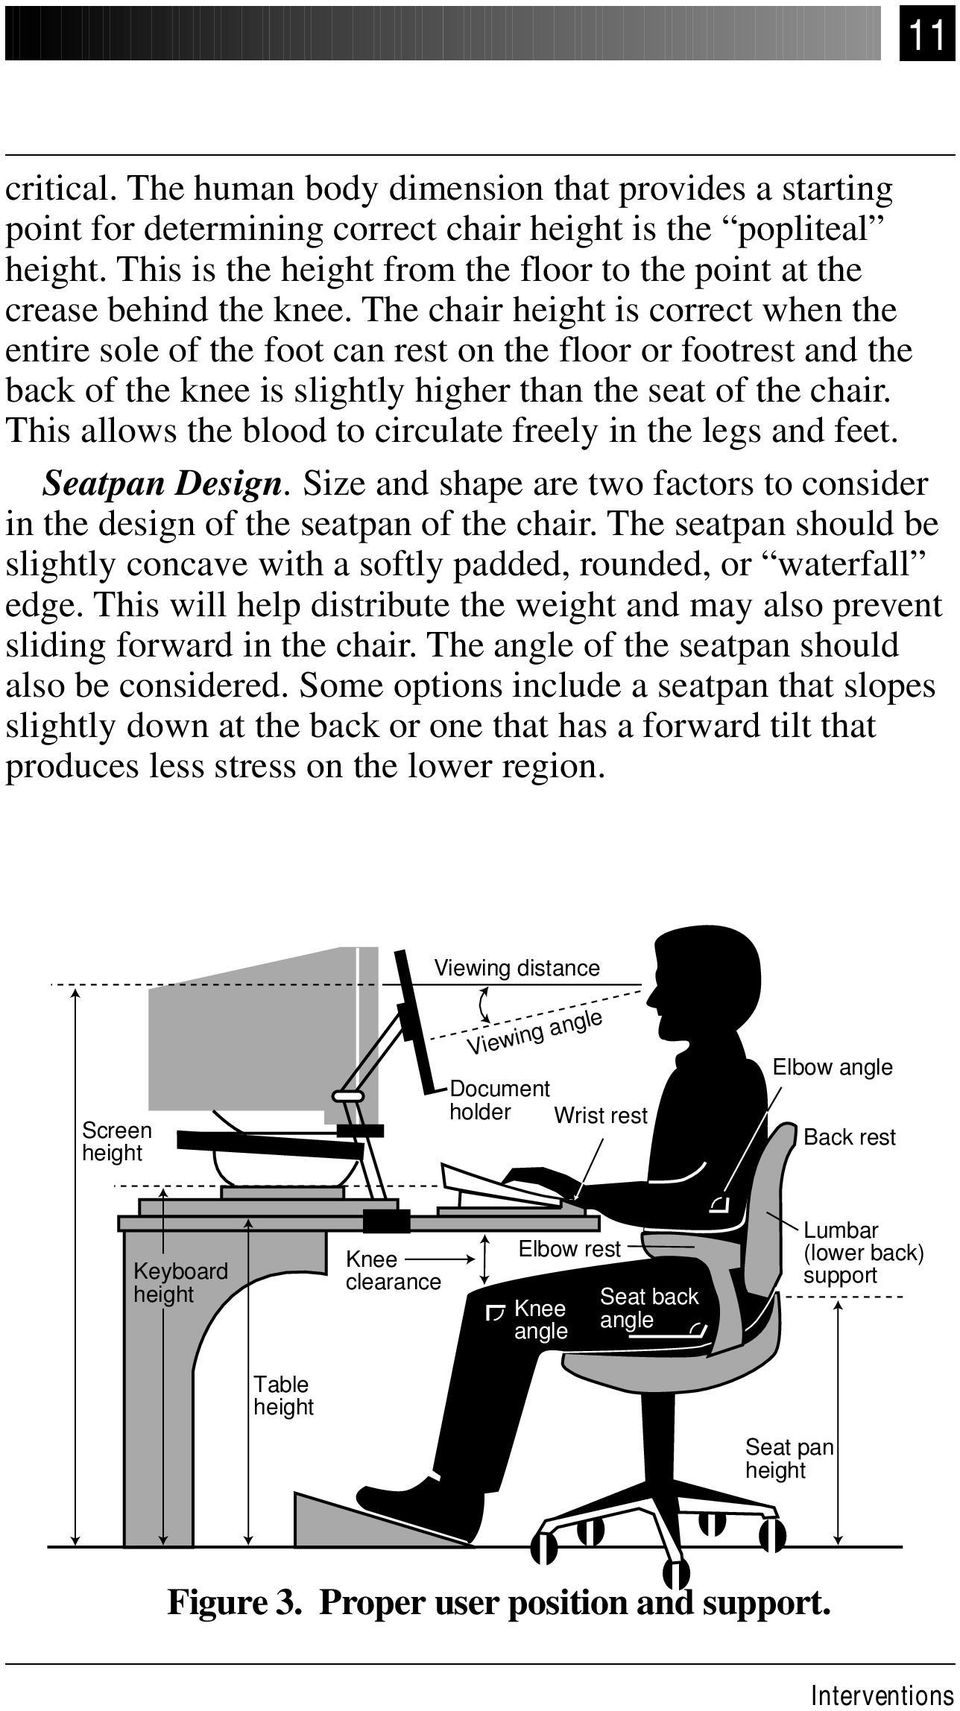 The chair height is correct when the entire sole of the foot can rest on the floor or footrest and the back of the knee is slightly higher than the seat of the chair.